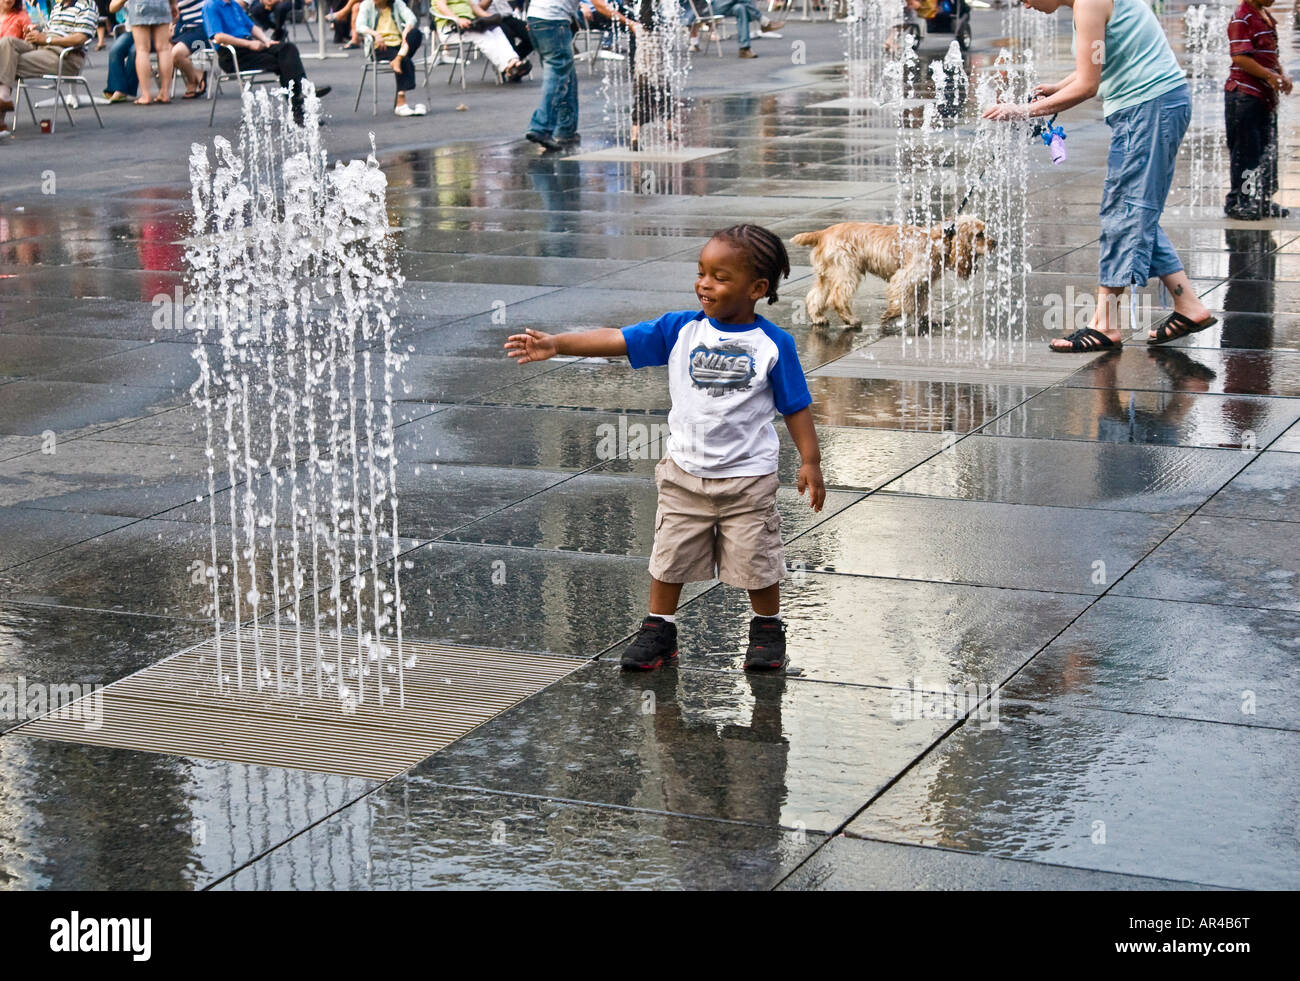 Water fountains canada - Little Boy Playing With Water Fountain Dundas Square Toronto Canada